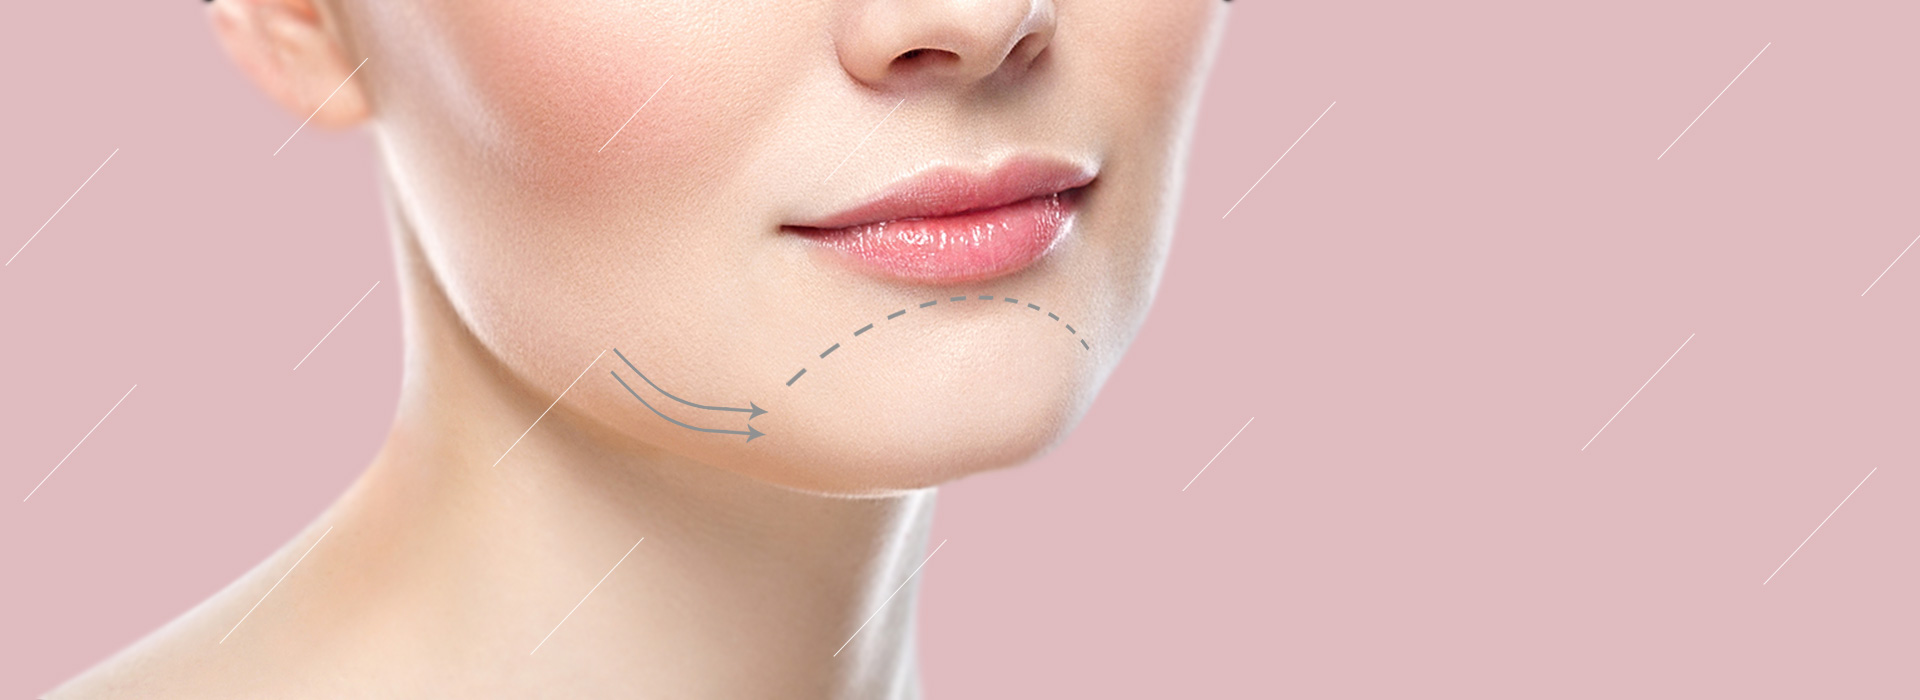 Chin Augmentation in Iran